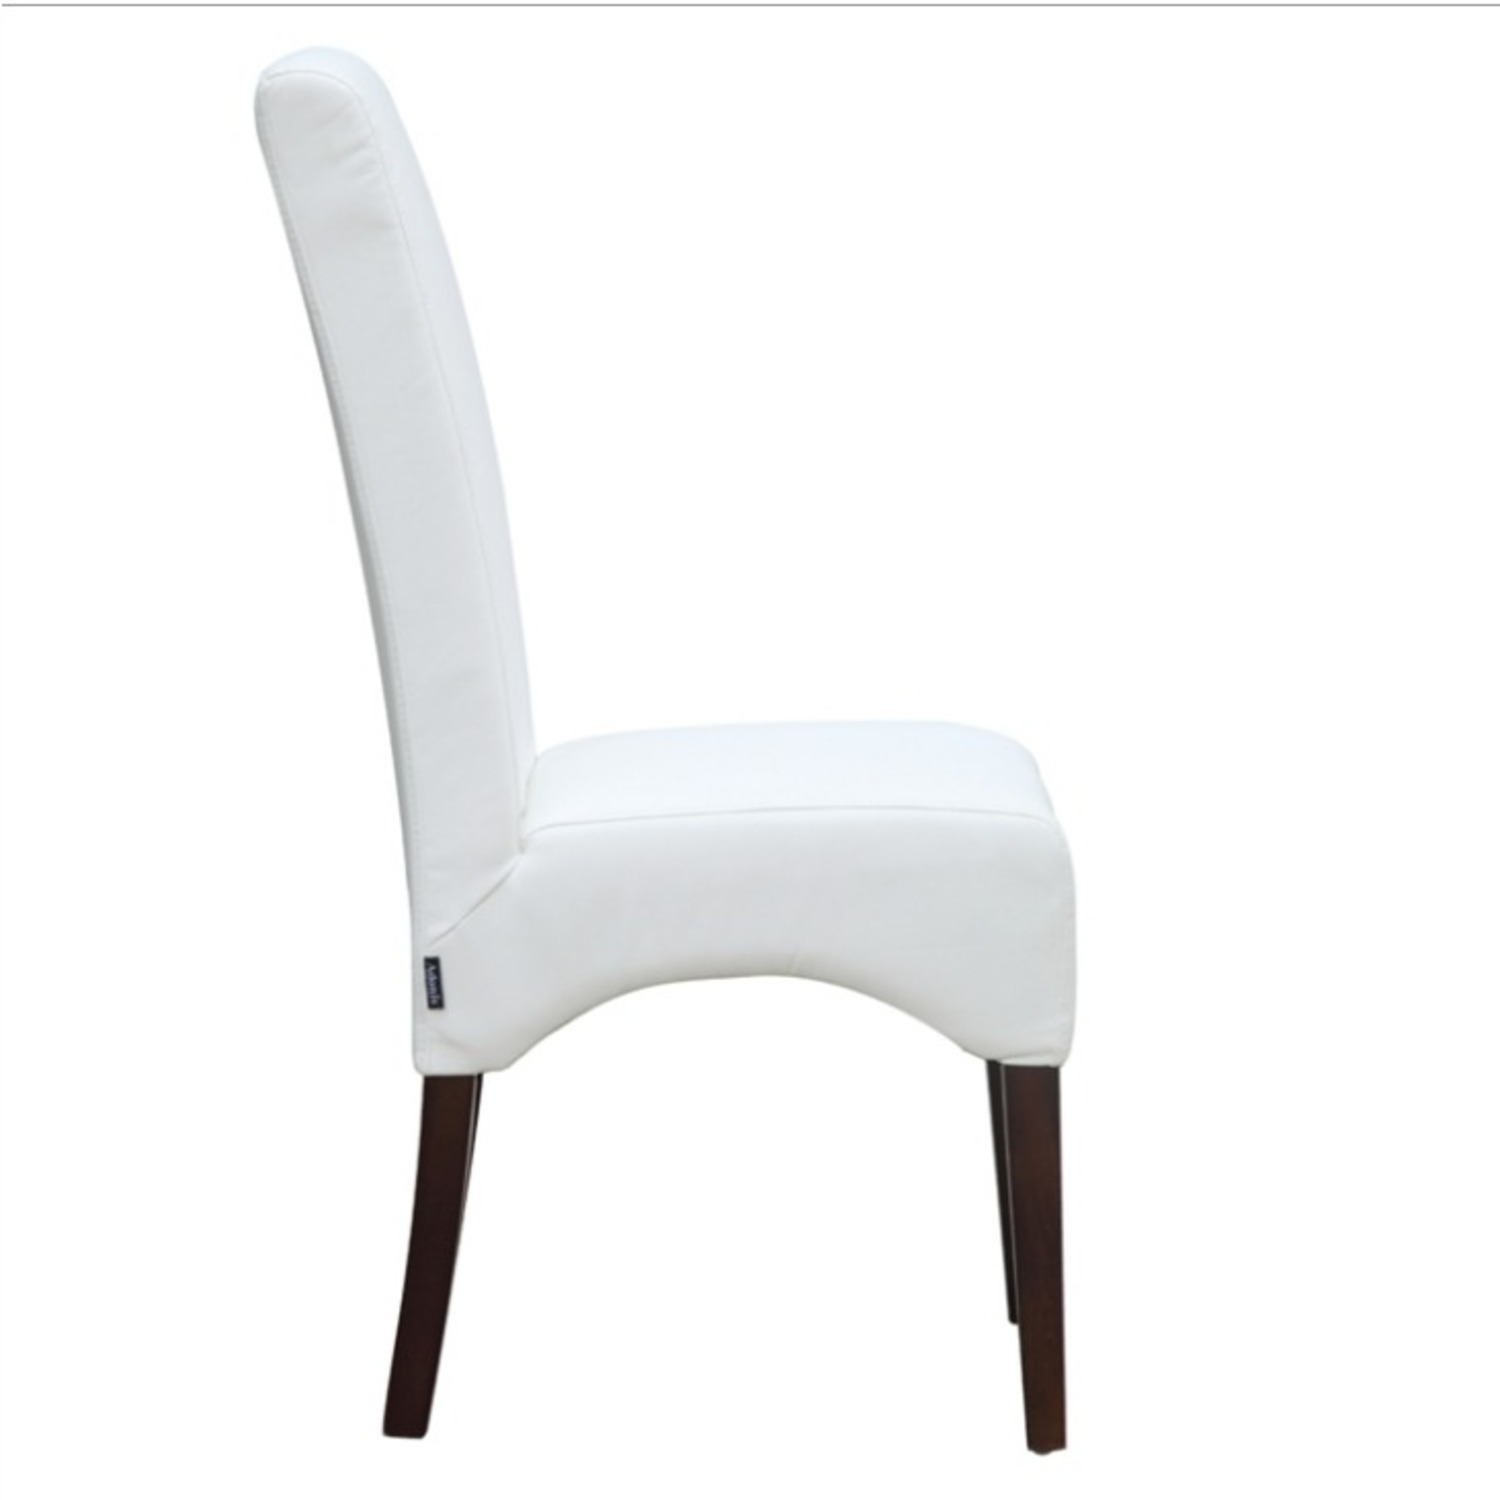 Modern Dining Chair In White PU Leather - image-1